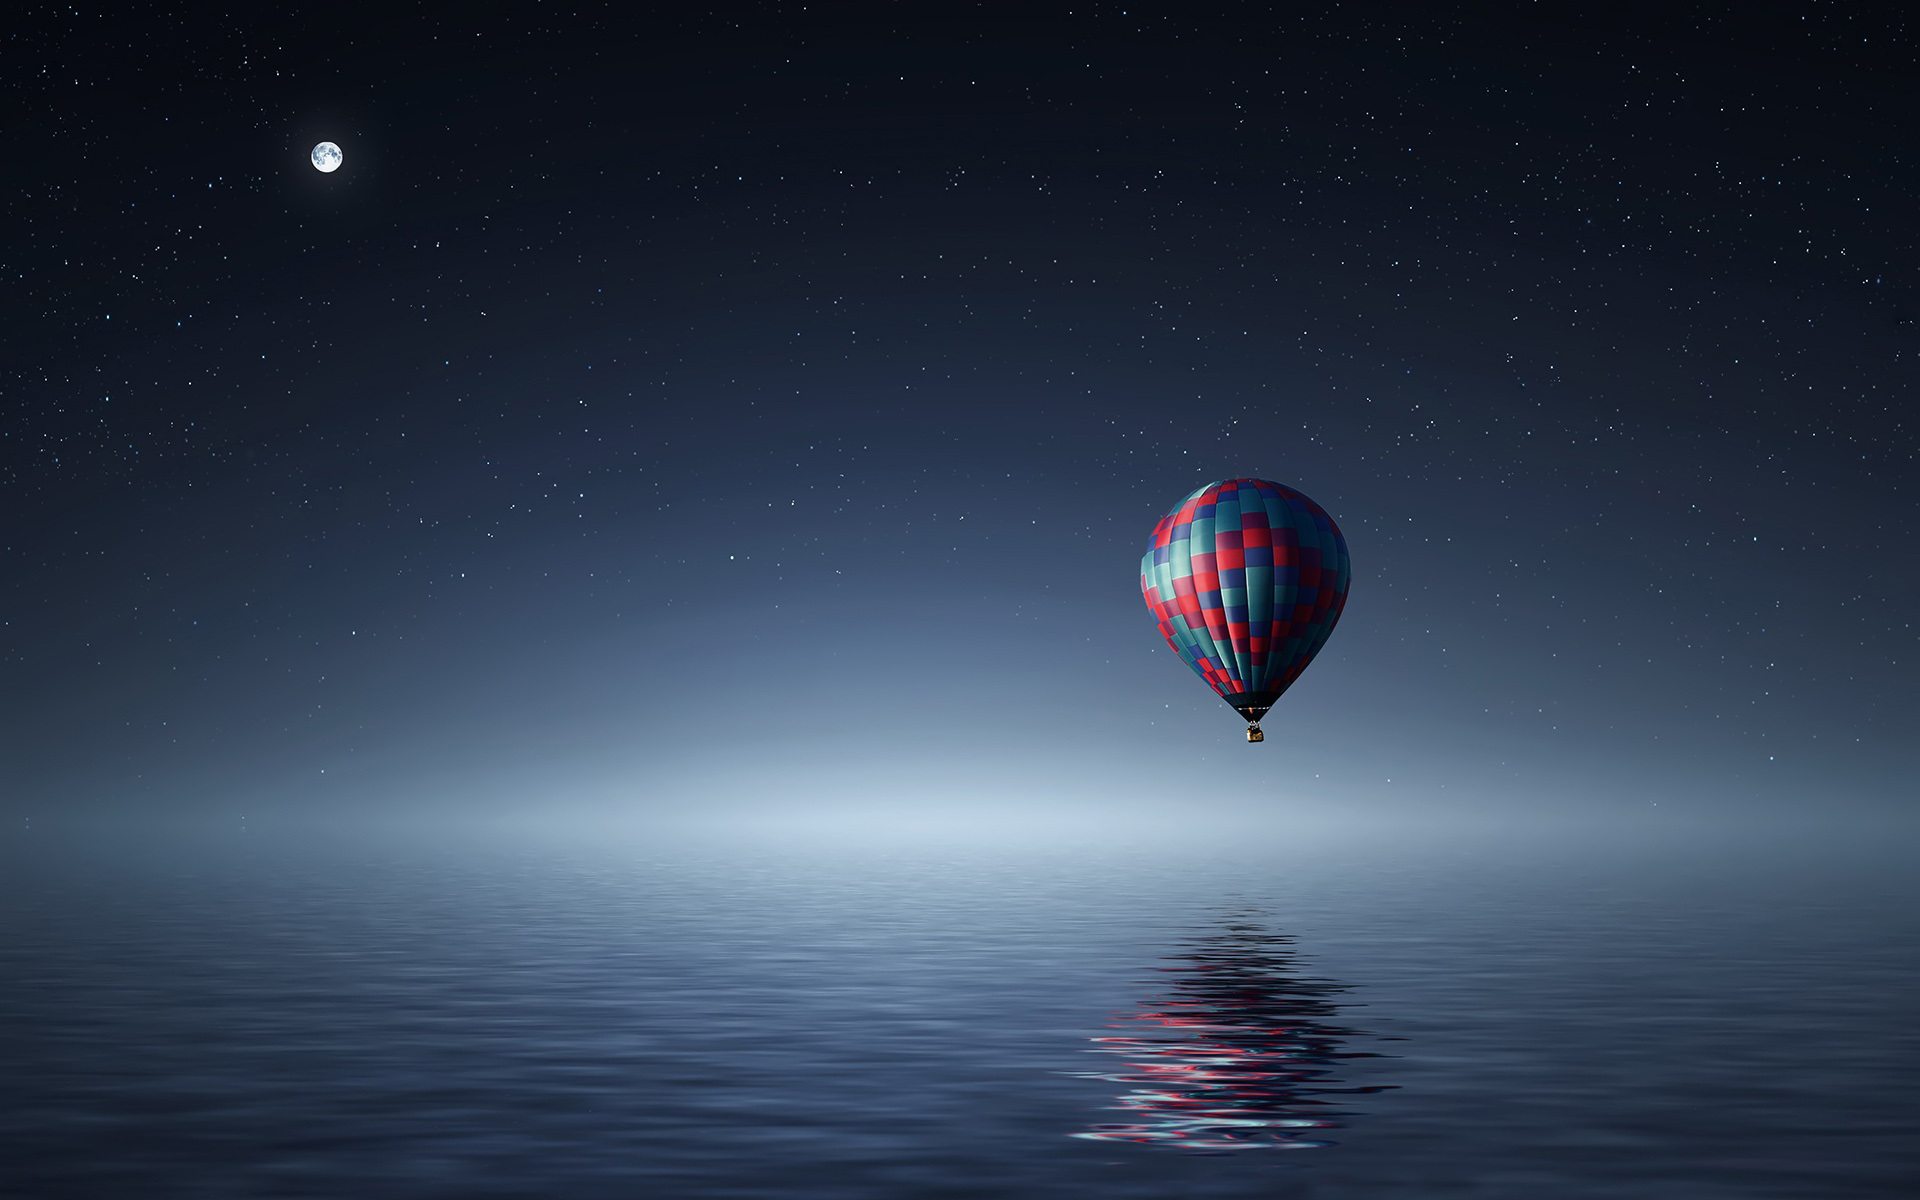 Hot air balloon over Sea Wallpapers HD Wallpapers 1920x1200